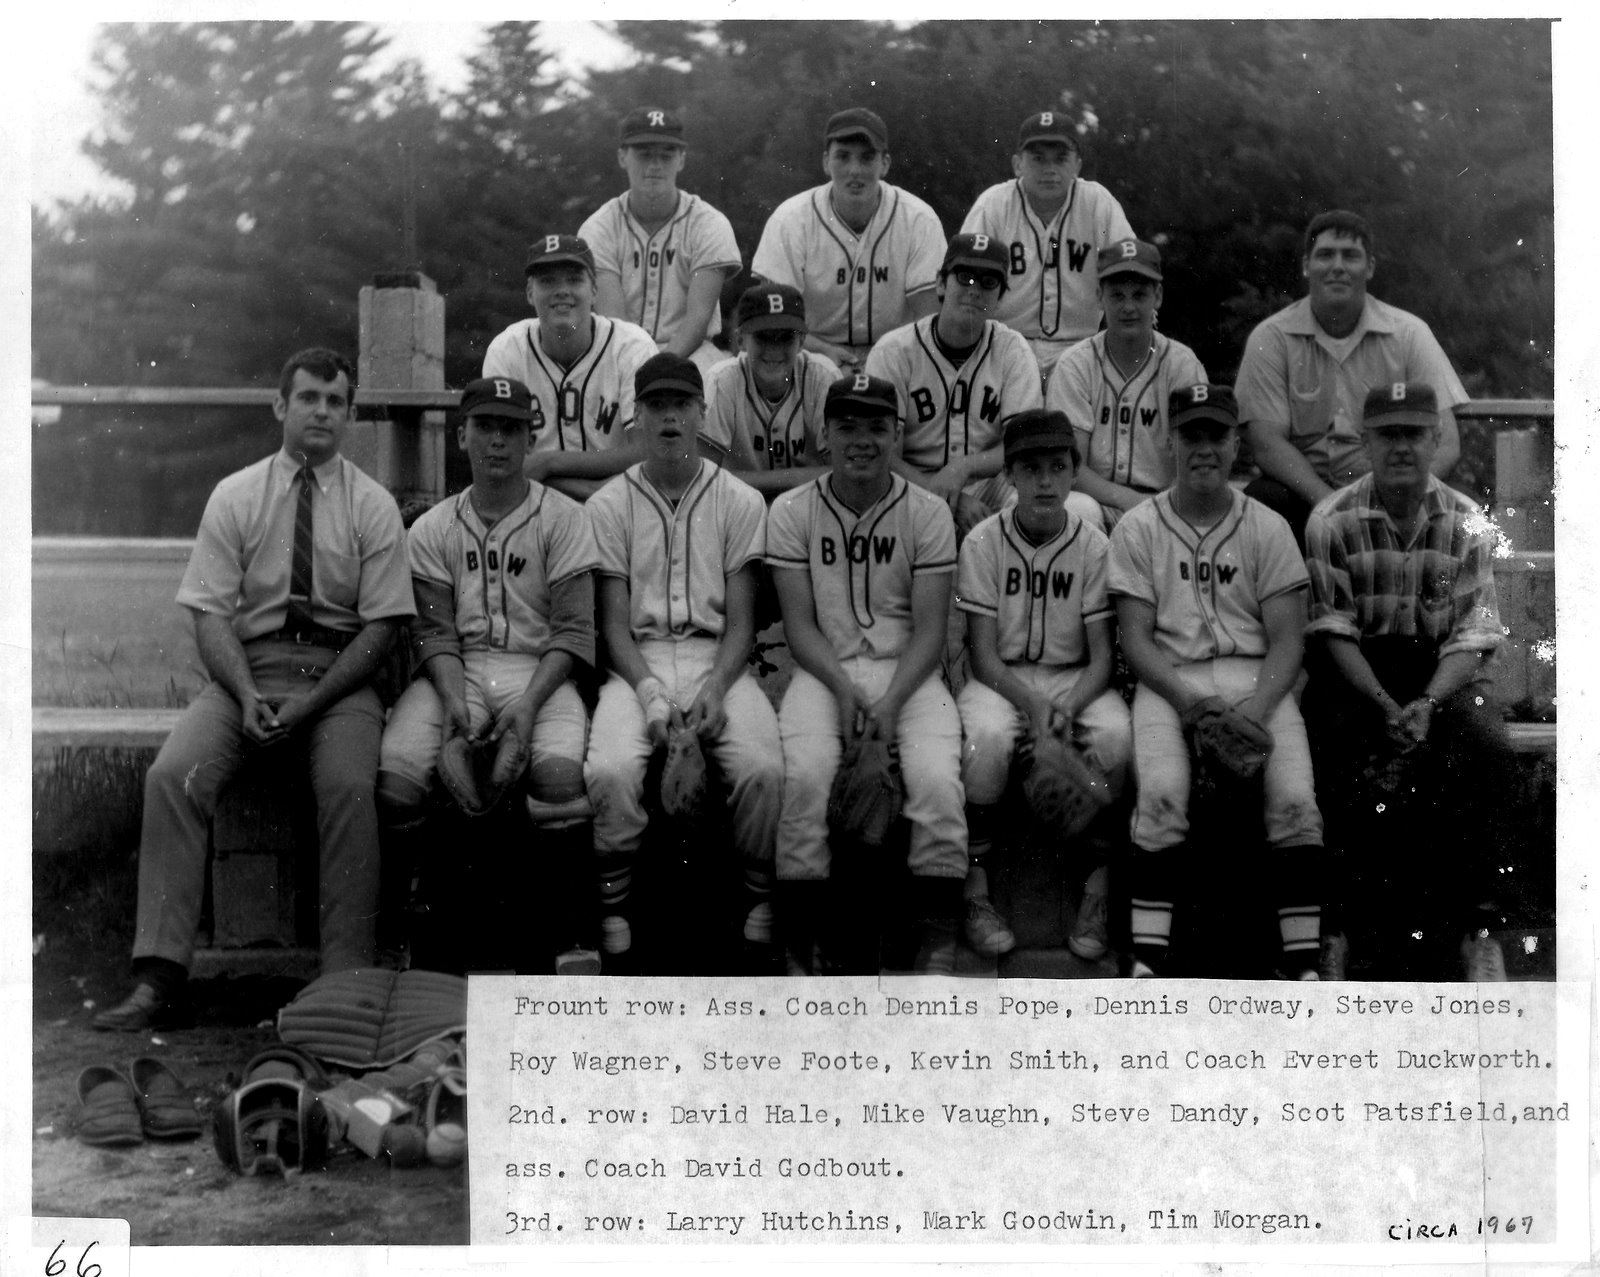 Pg 66  Bow Team in 1969